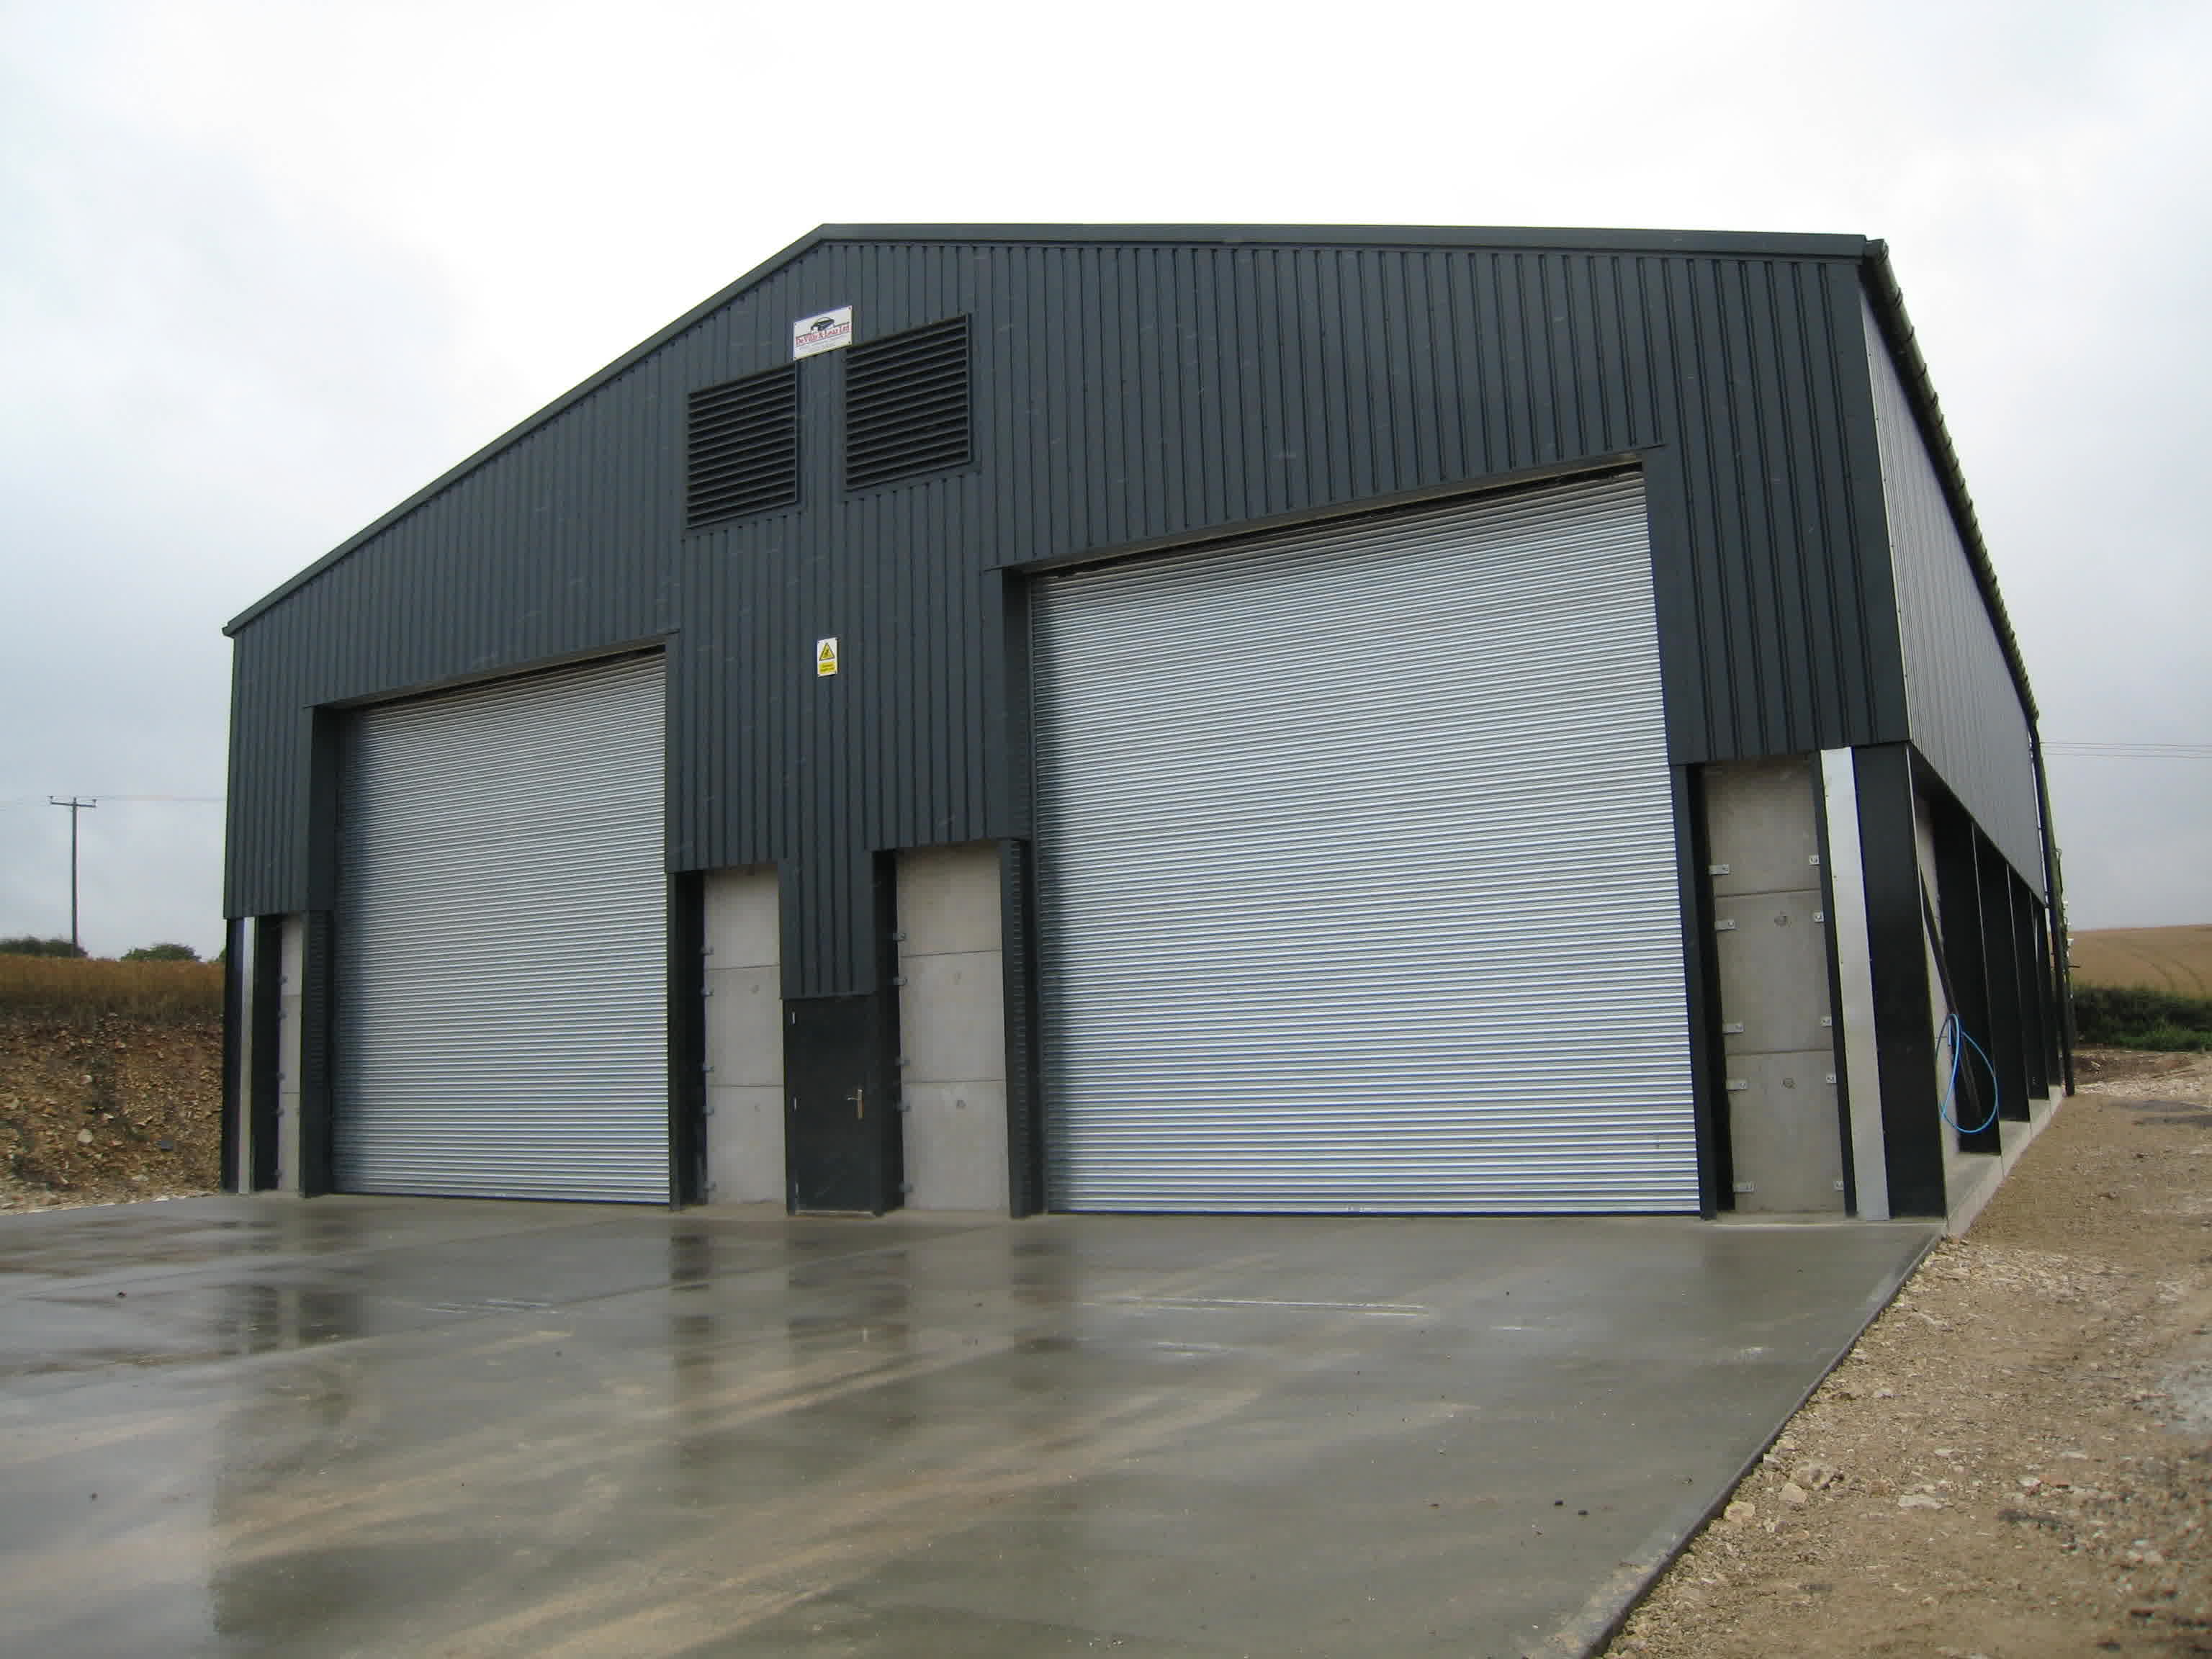 Minimalist Grey And White Nuance Of The Grain Steel Buildings Can Be ...